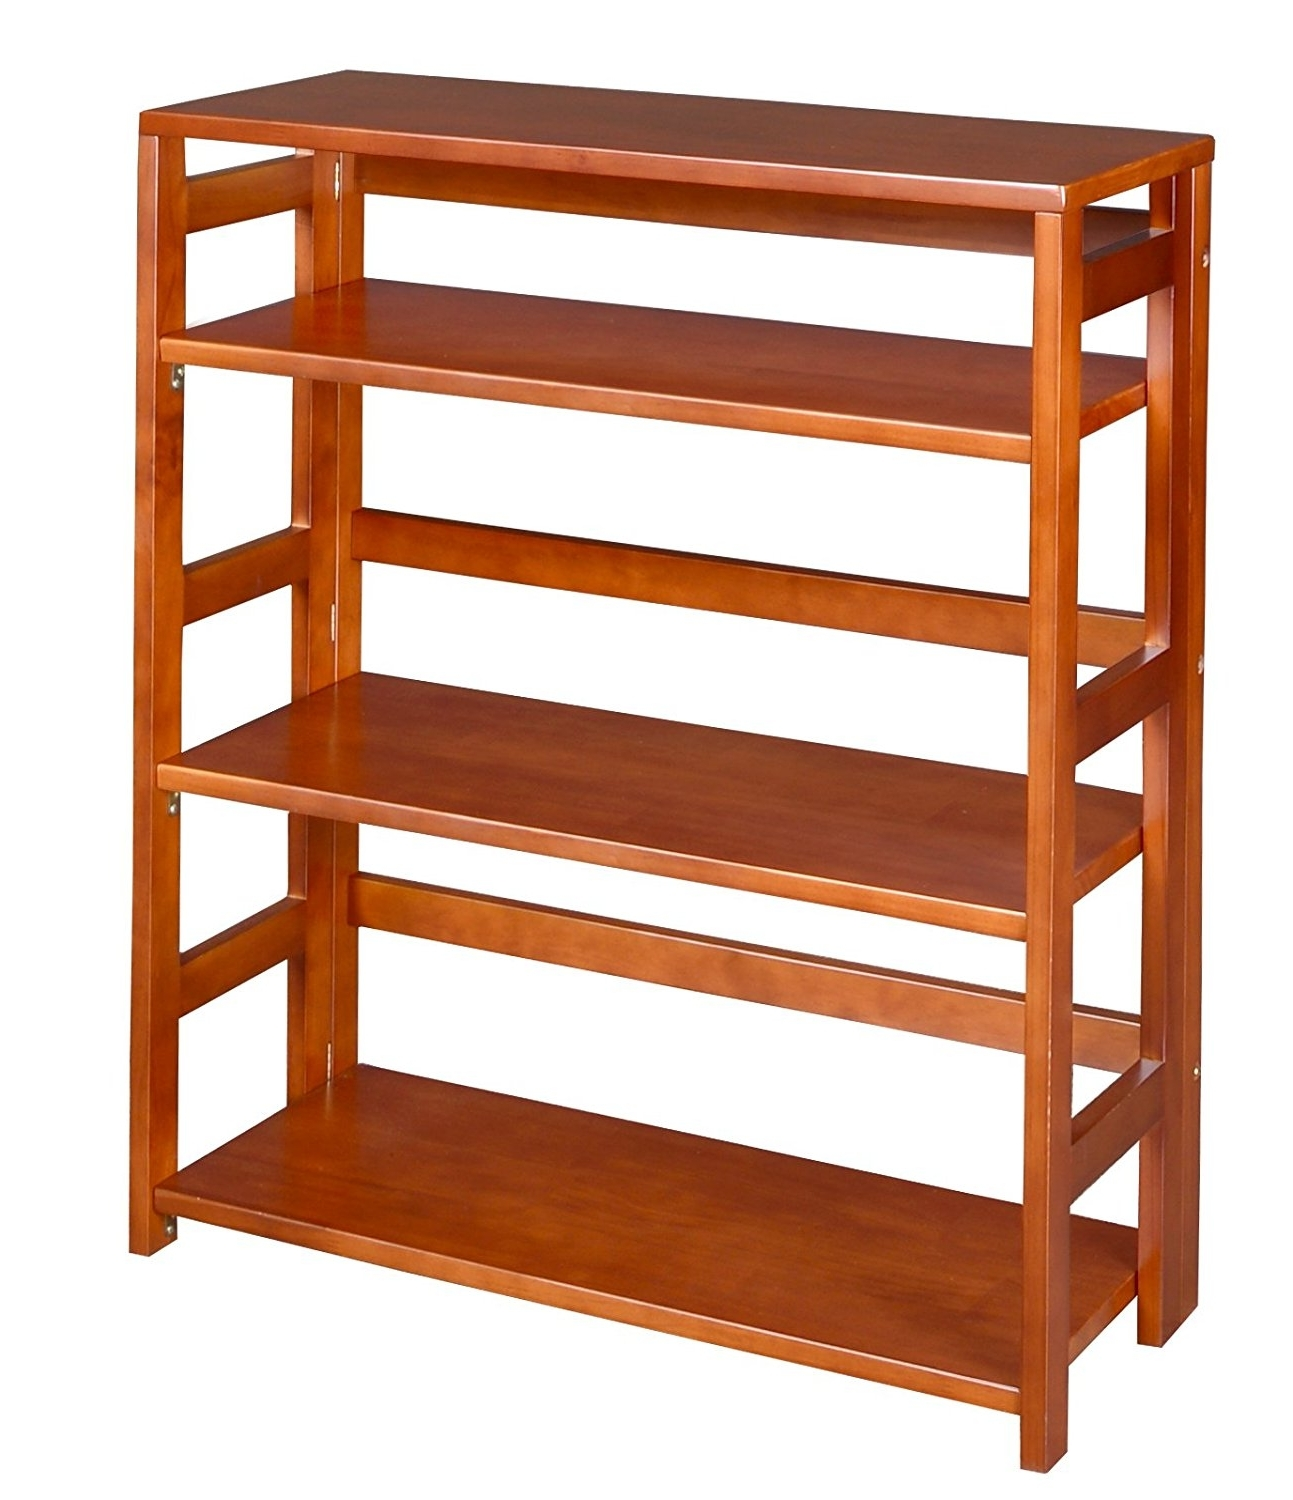 2019 Best Of 36 Inch Wide Bookcases